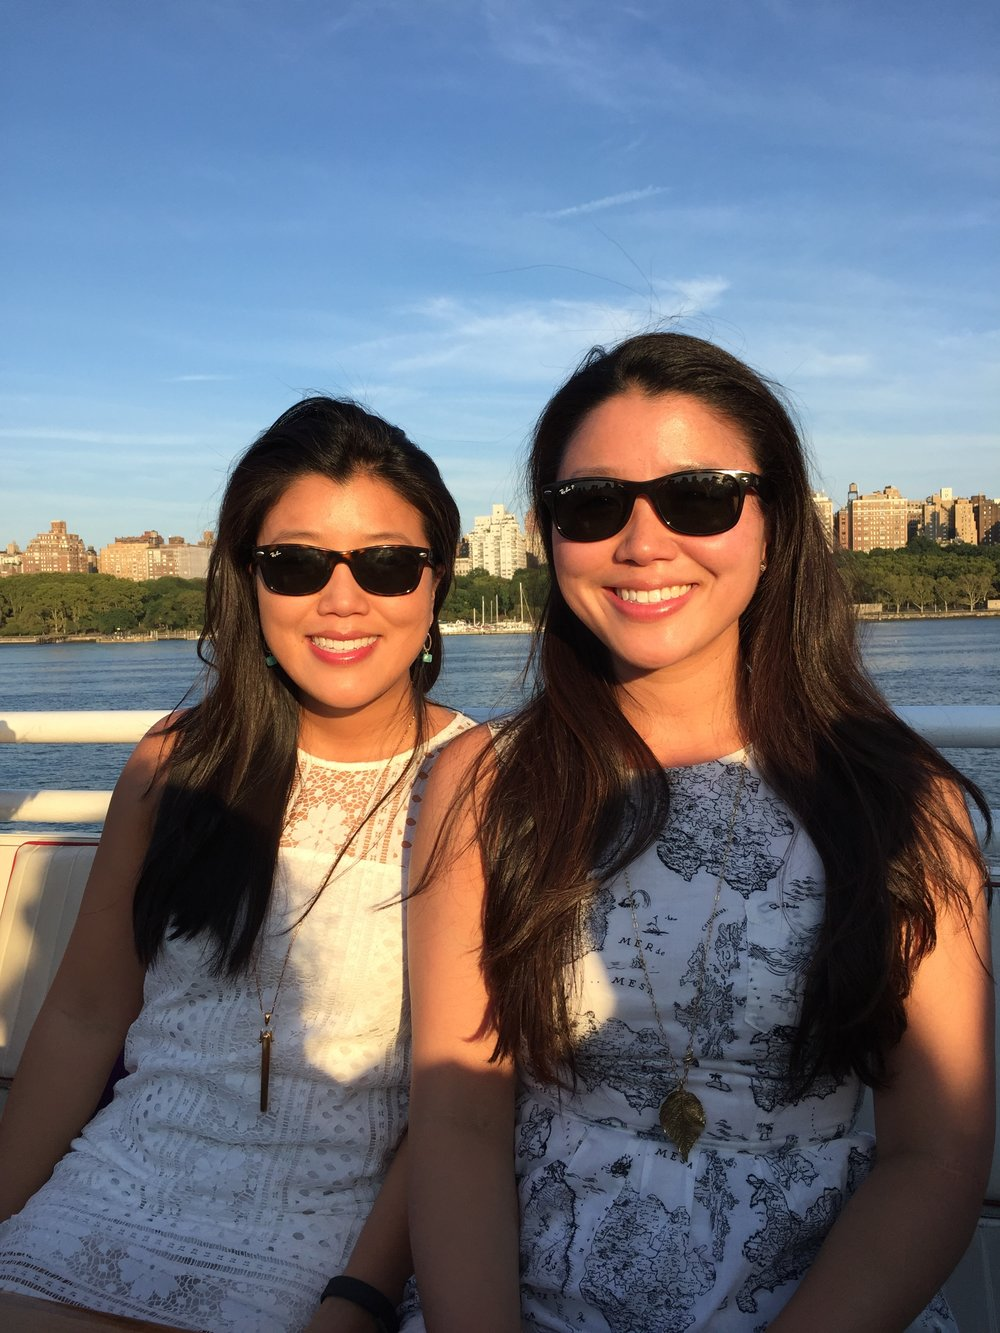 Mary (left) with her twin sister, Elizabeth, last month on a North River Lobster Company boat ride in NYC.